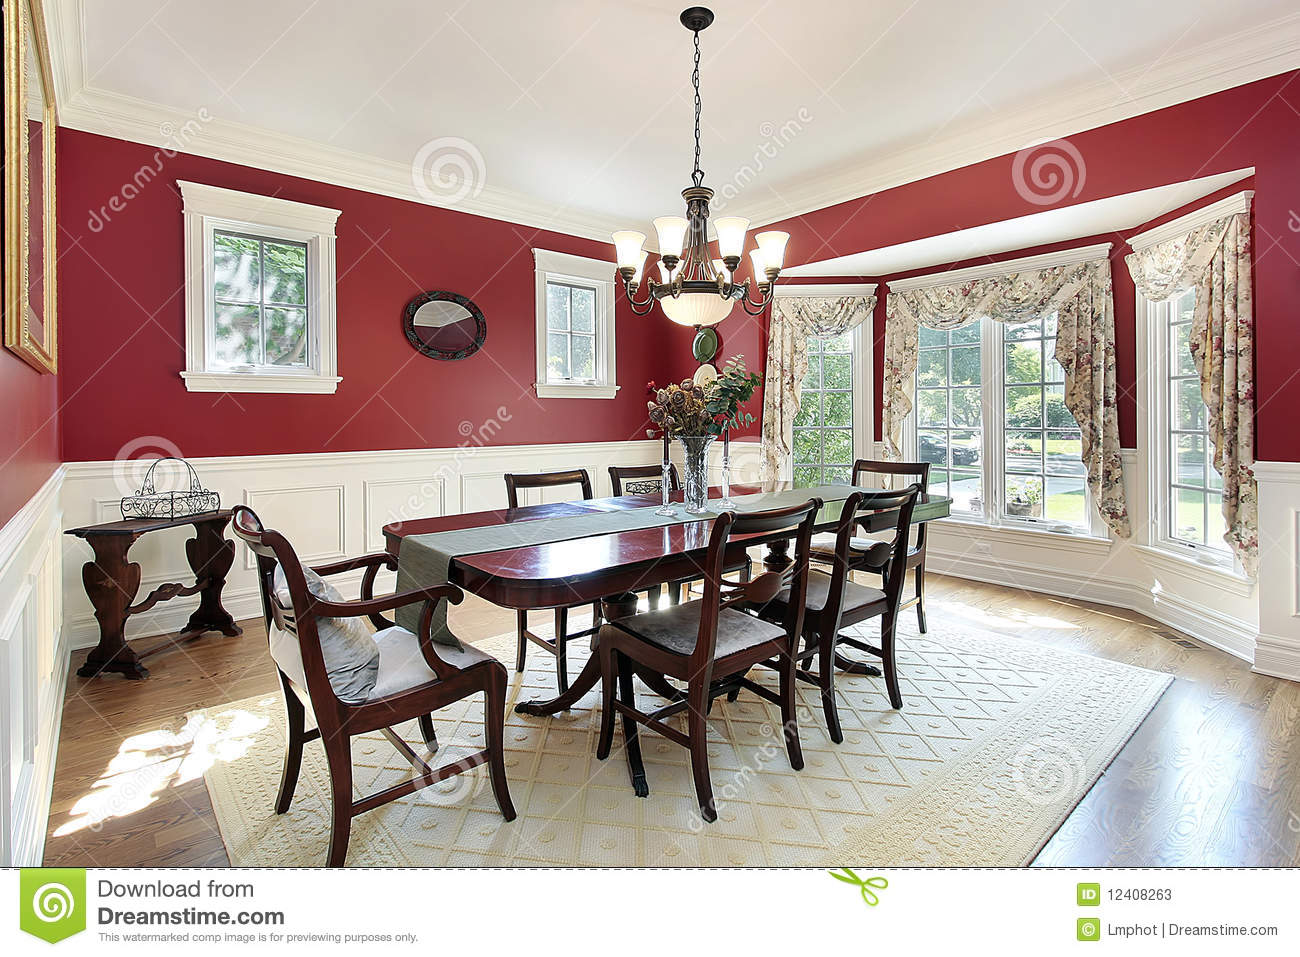 Dining Room With Red Walls Stock Image Image Of Luxury